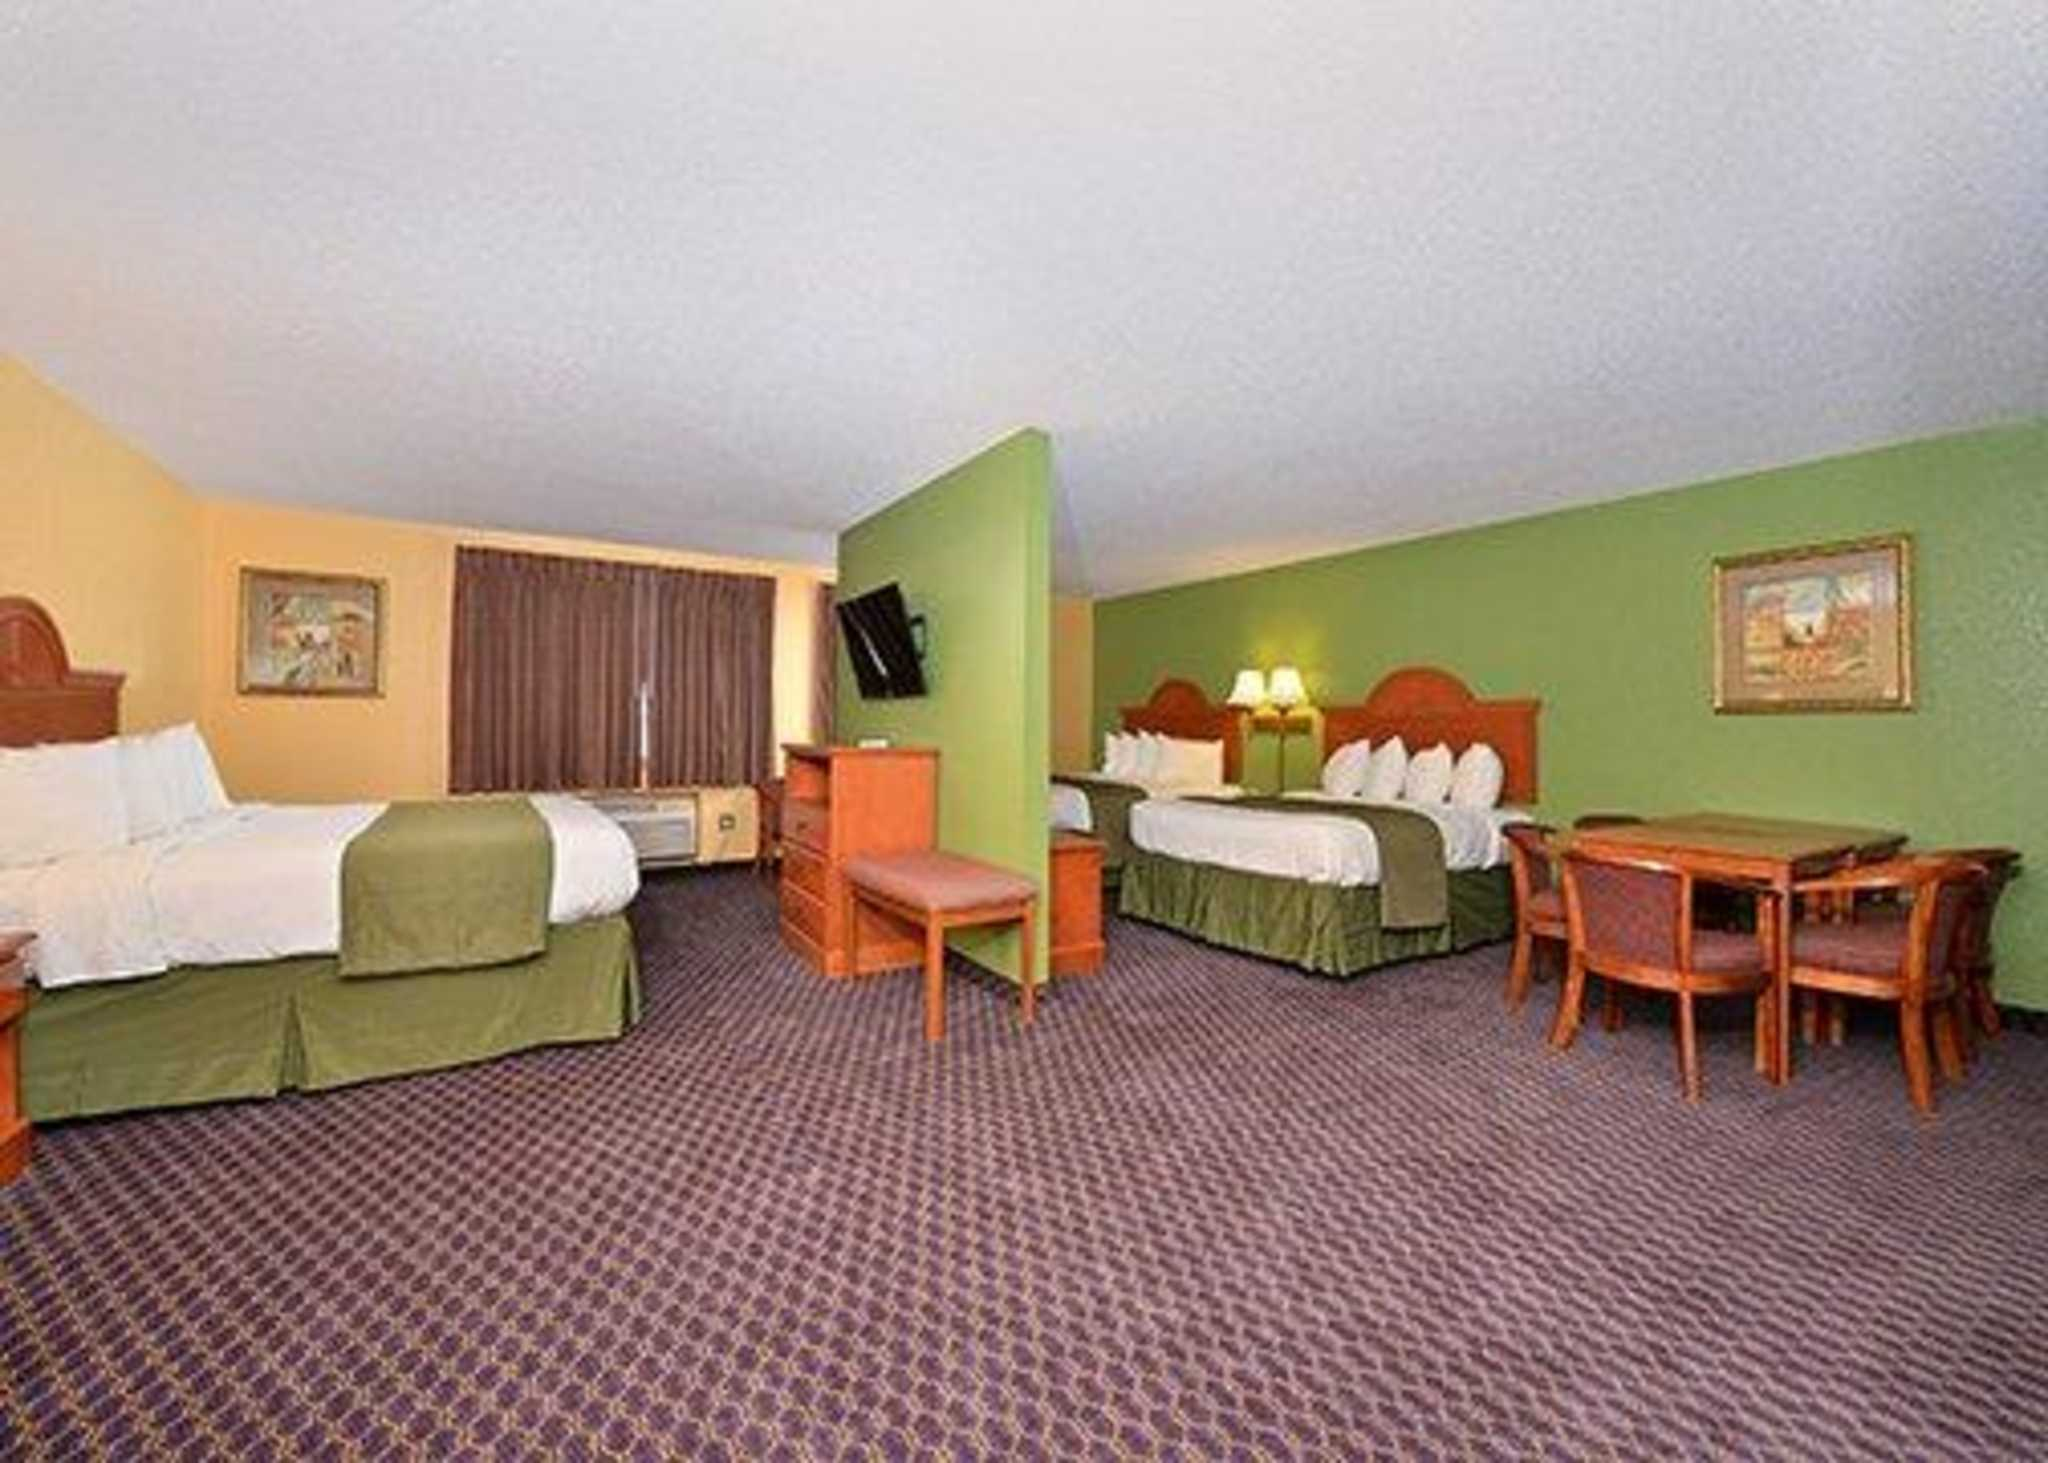 Quality Inn & Suites image 17